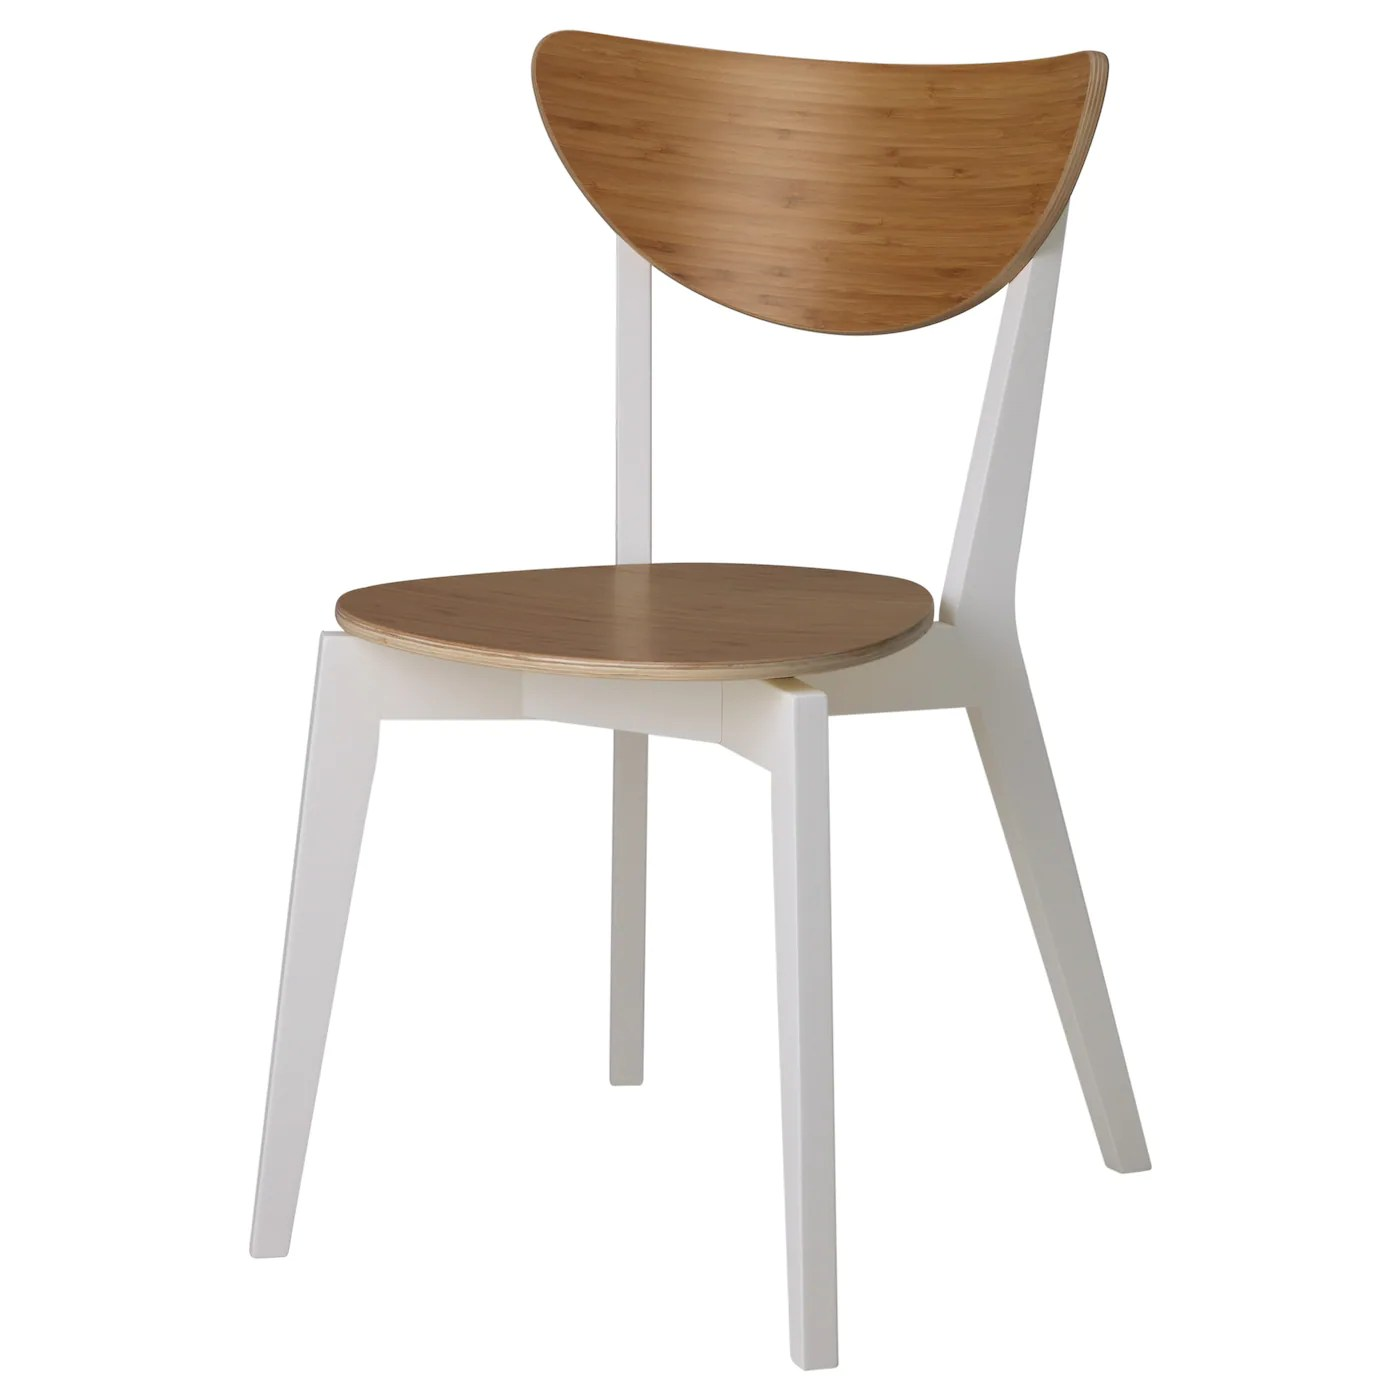 sex chair videos counter height chairs nordmyra bamboo white ikea